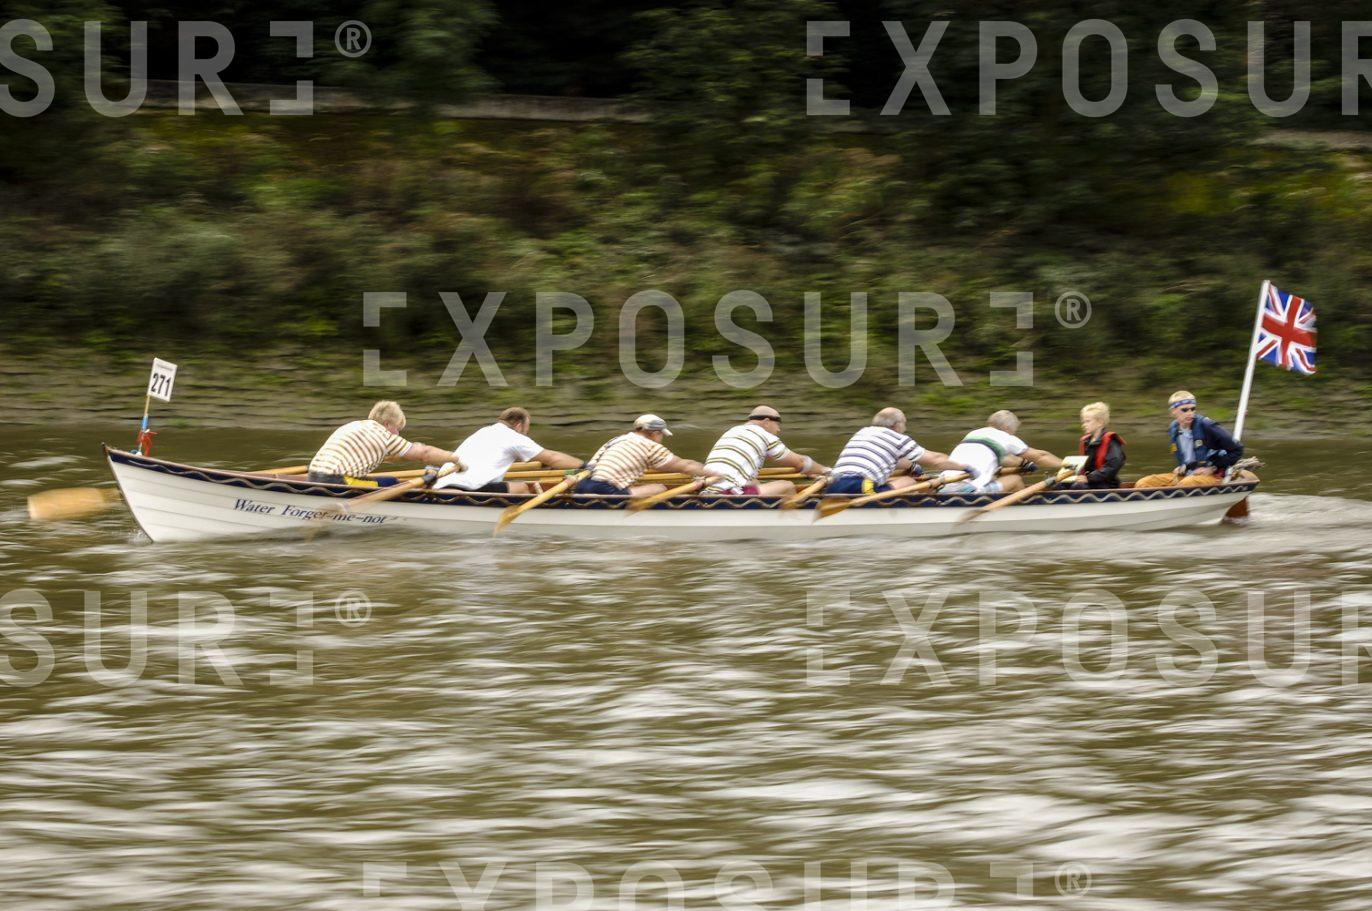 Rowing boat at speed.